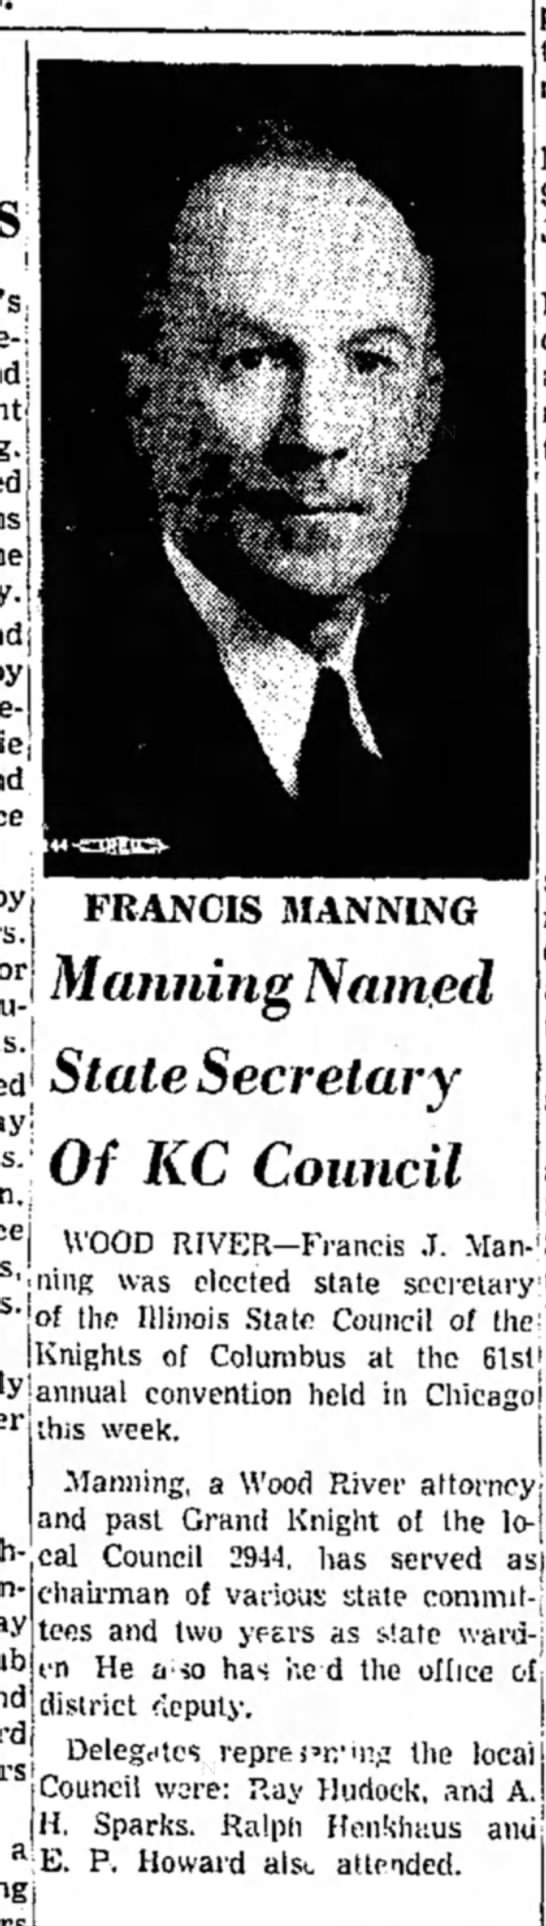 Francis Manning State Secretary of KC Council, pic - ! j I FRANCIS MANNING I Manning Named i _, ^ 1...